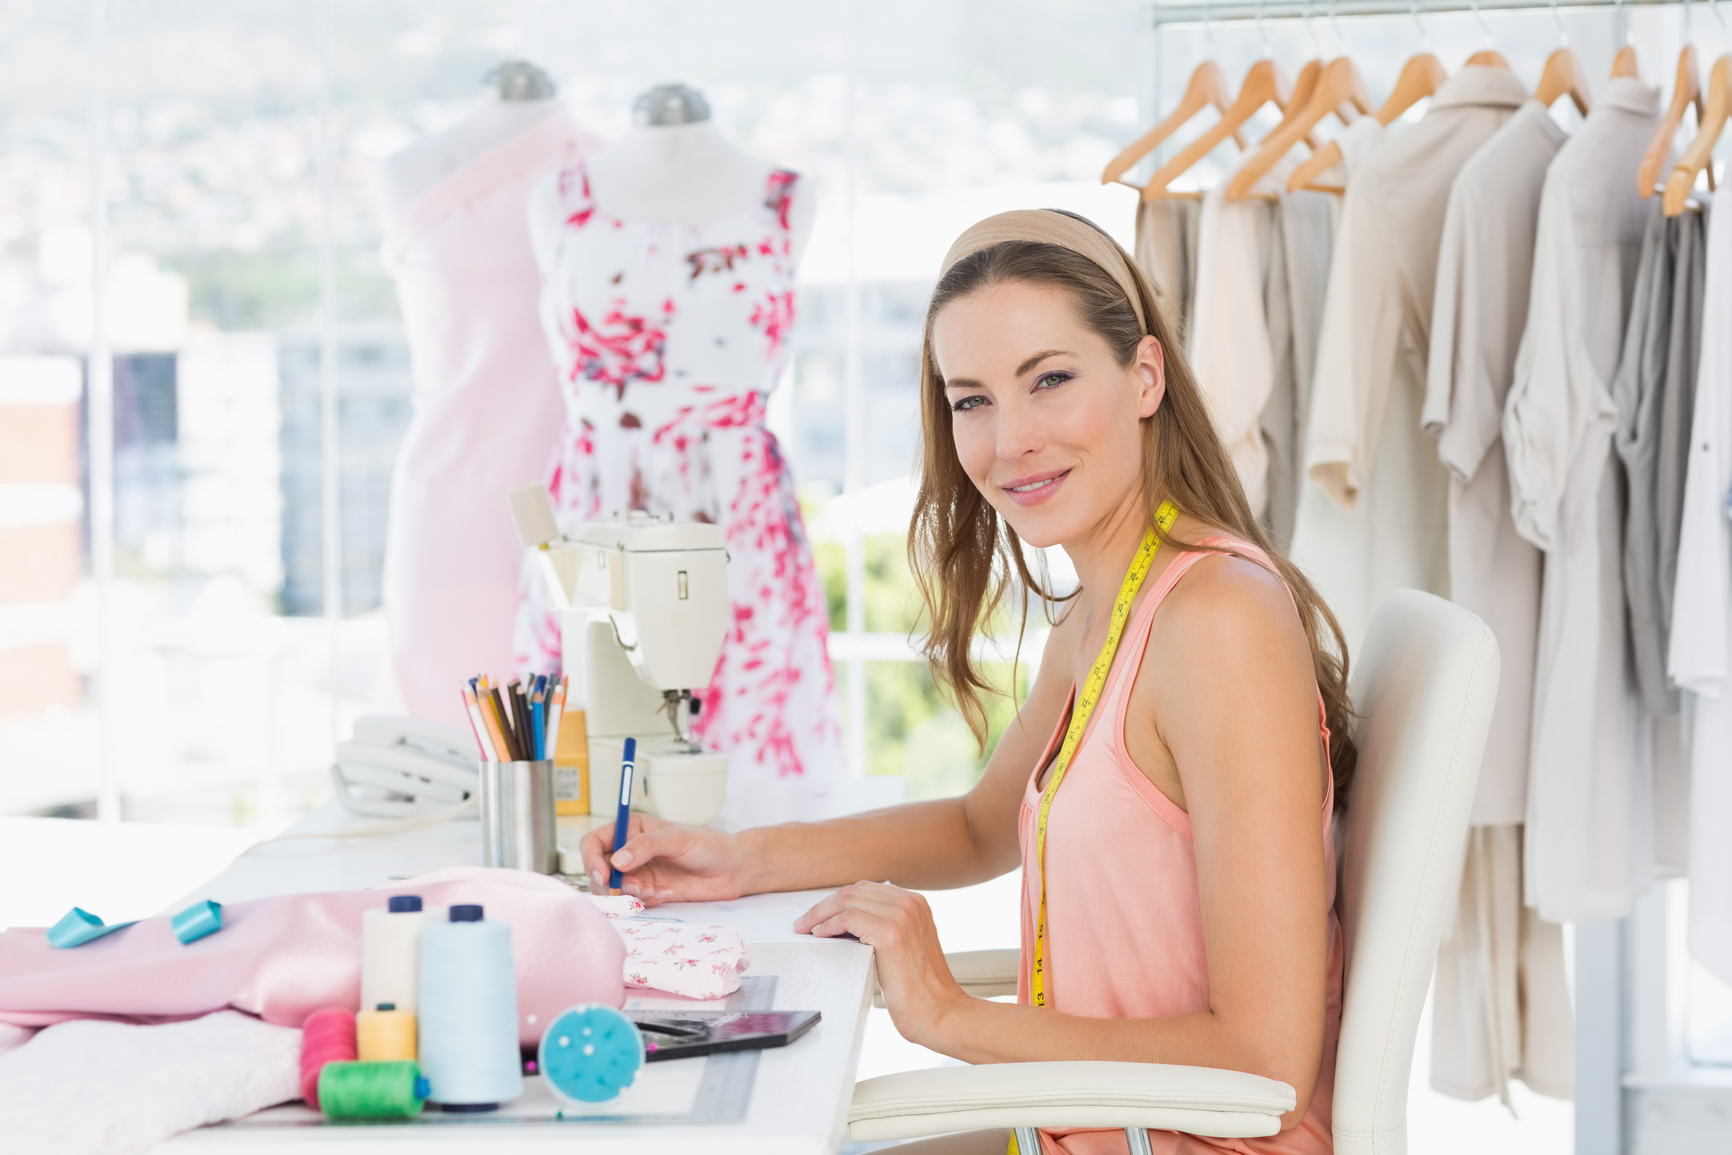 Jobs In Fashion Fashion Industry Jobs In Focus Recruitment